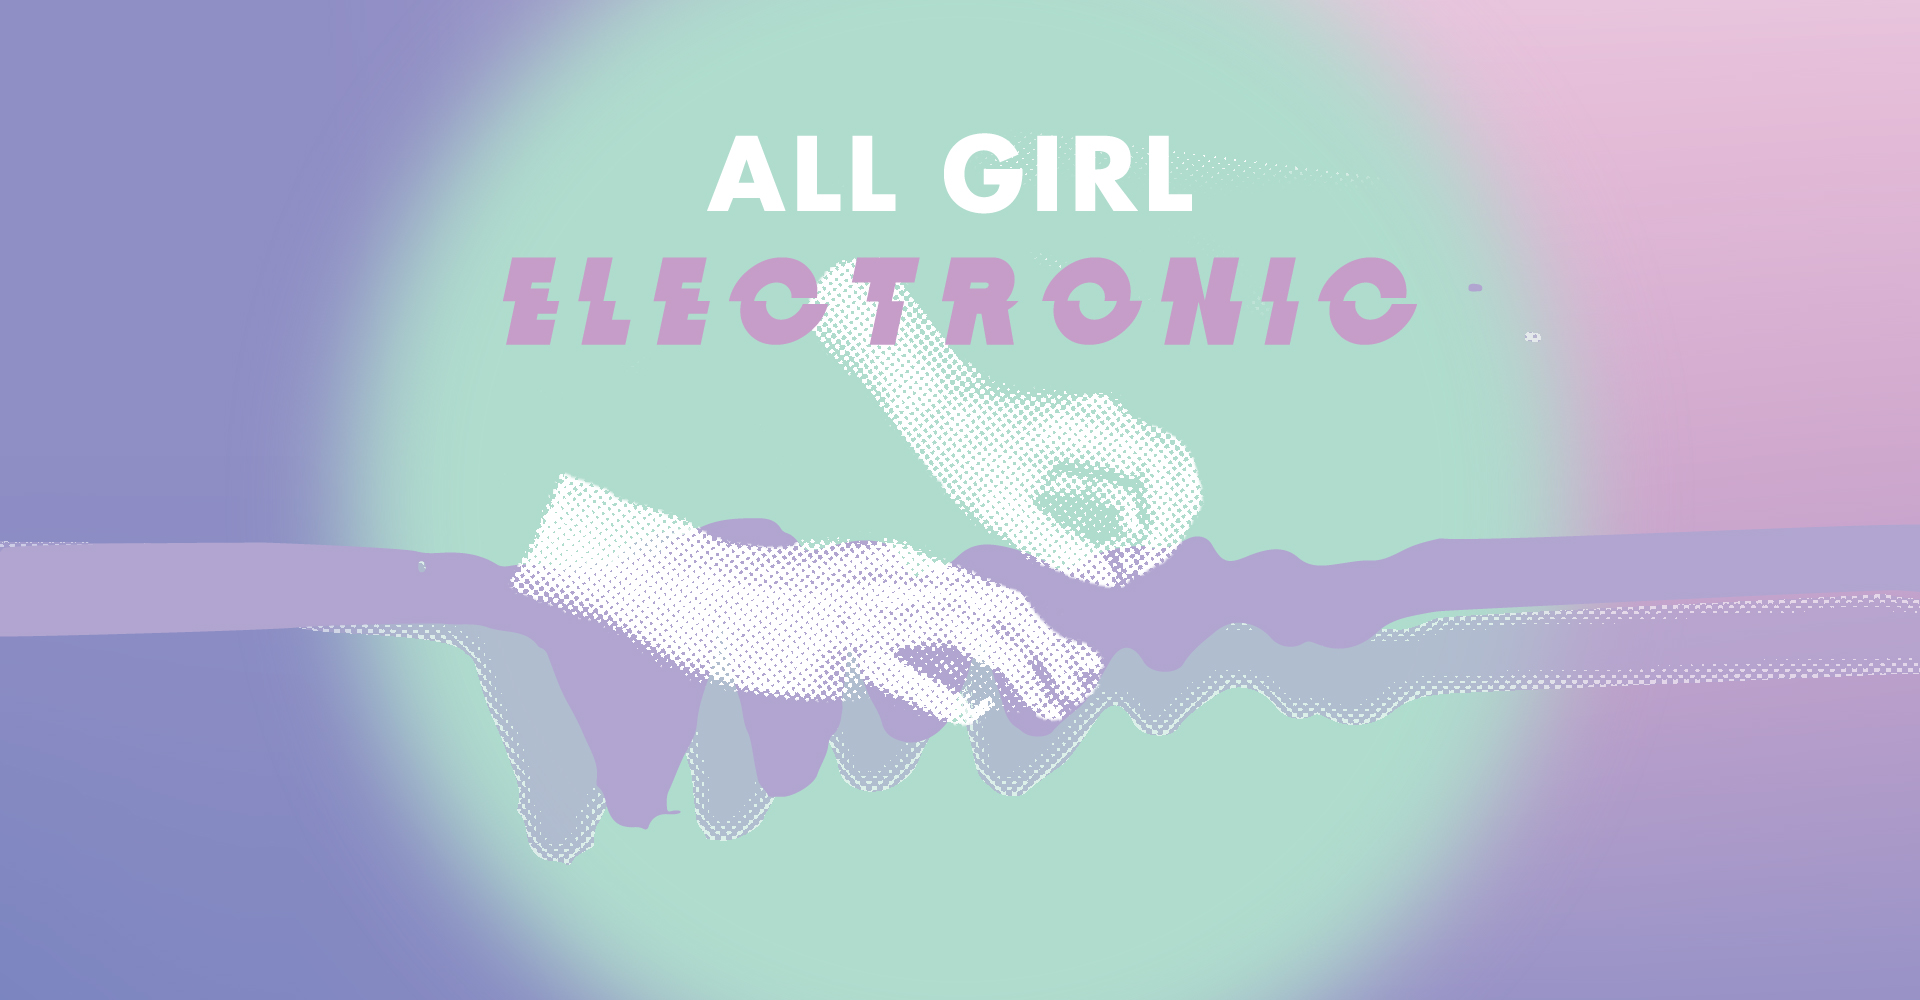 All Girl Electronic (2018) - Information & Cultural Exchange